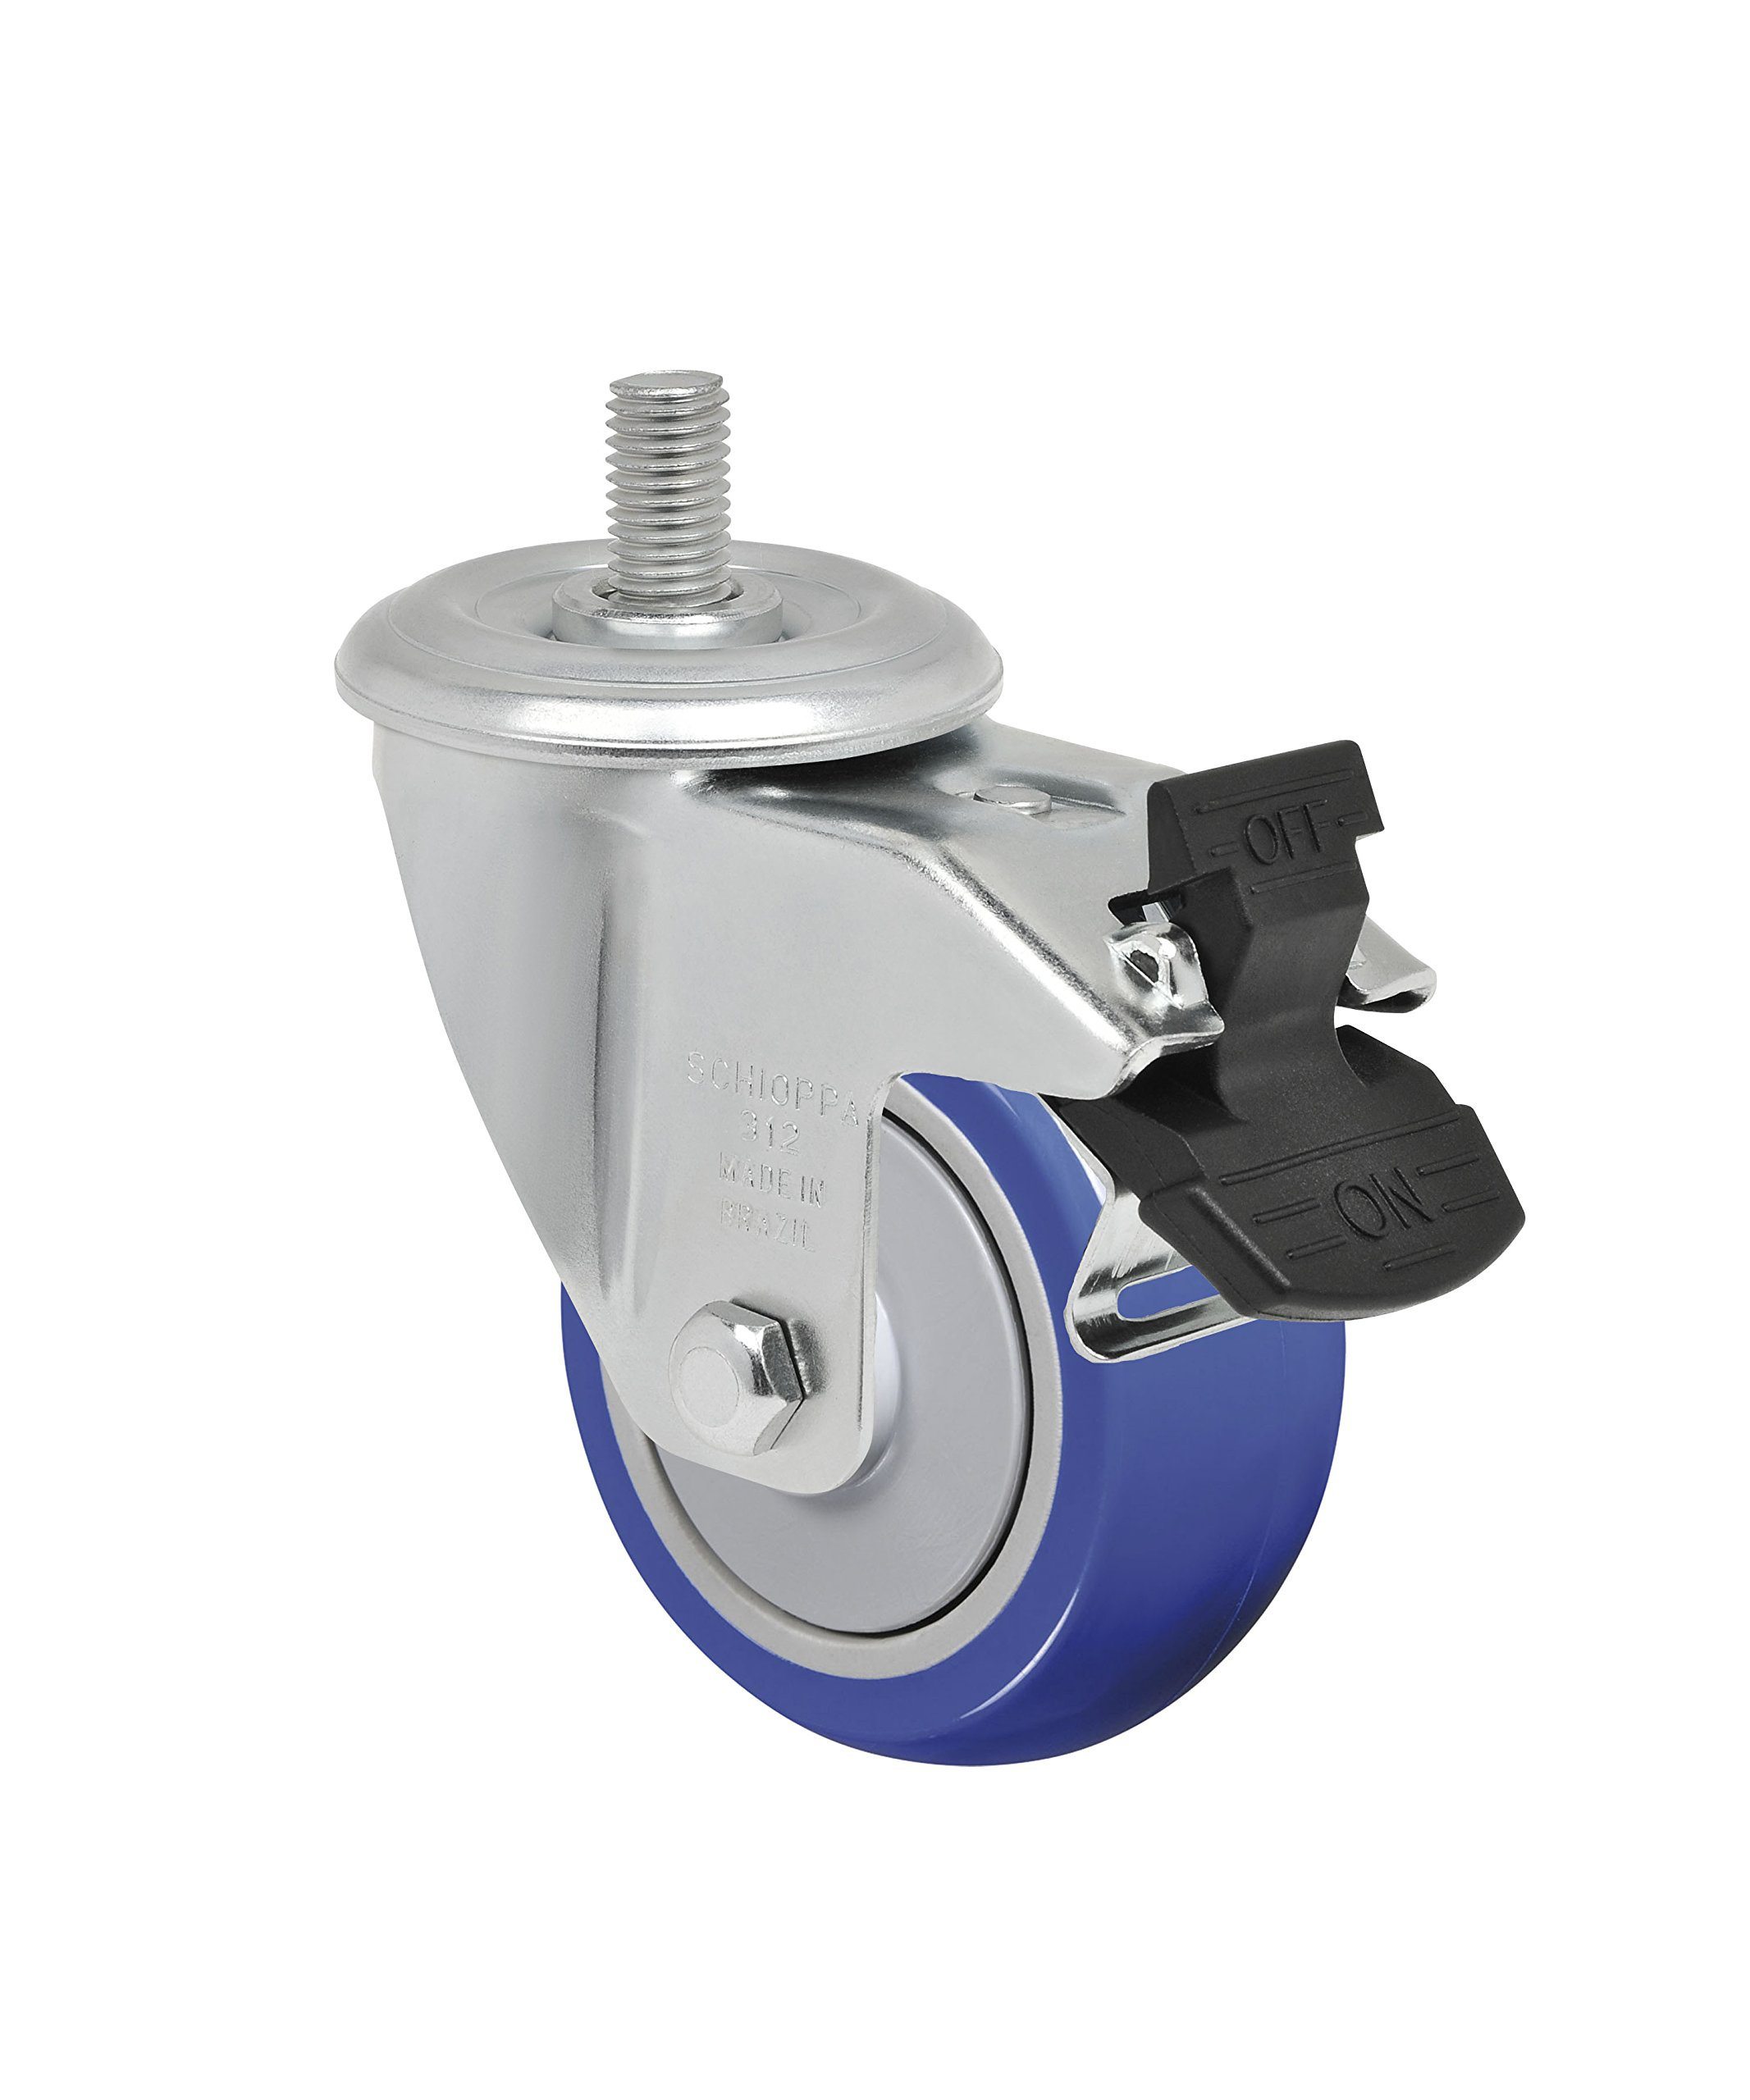 Schioppa L12 Series, GLEED 312 TP G, 3 x 1-1/4'' Swivel Caster with Total Lock Brake, Non-Marking Thermoplastic Compound Wheel, 150 lbs, 3/8'' Diameter x 1-1/2'' Length Threaded Stem